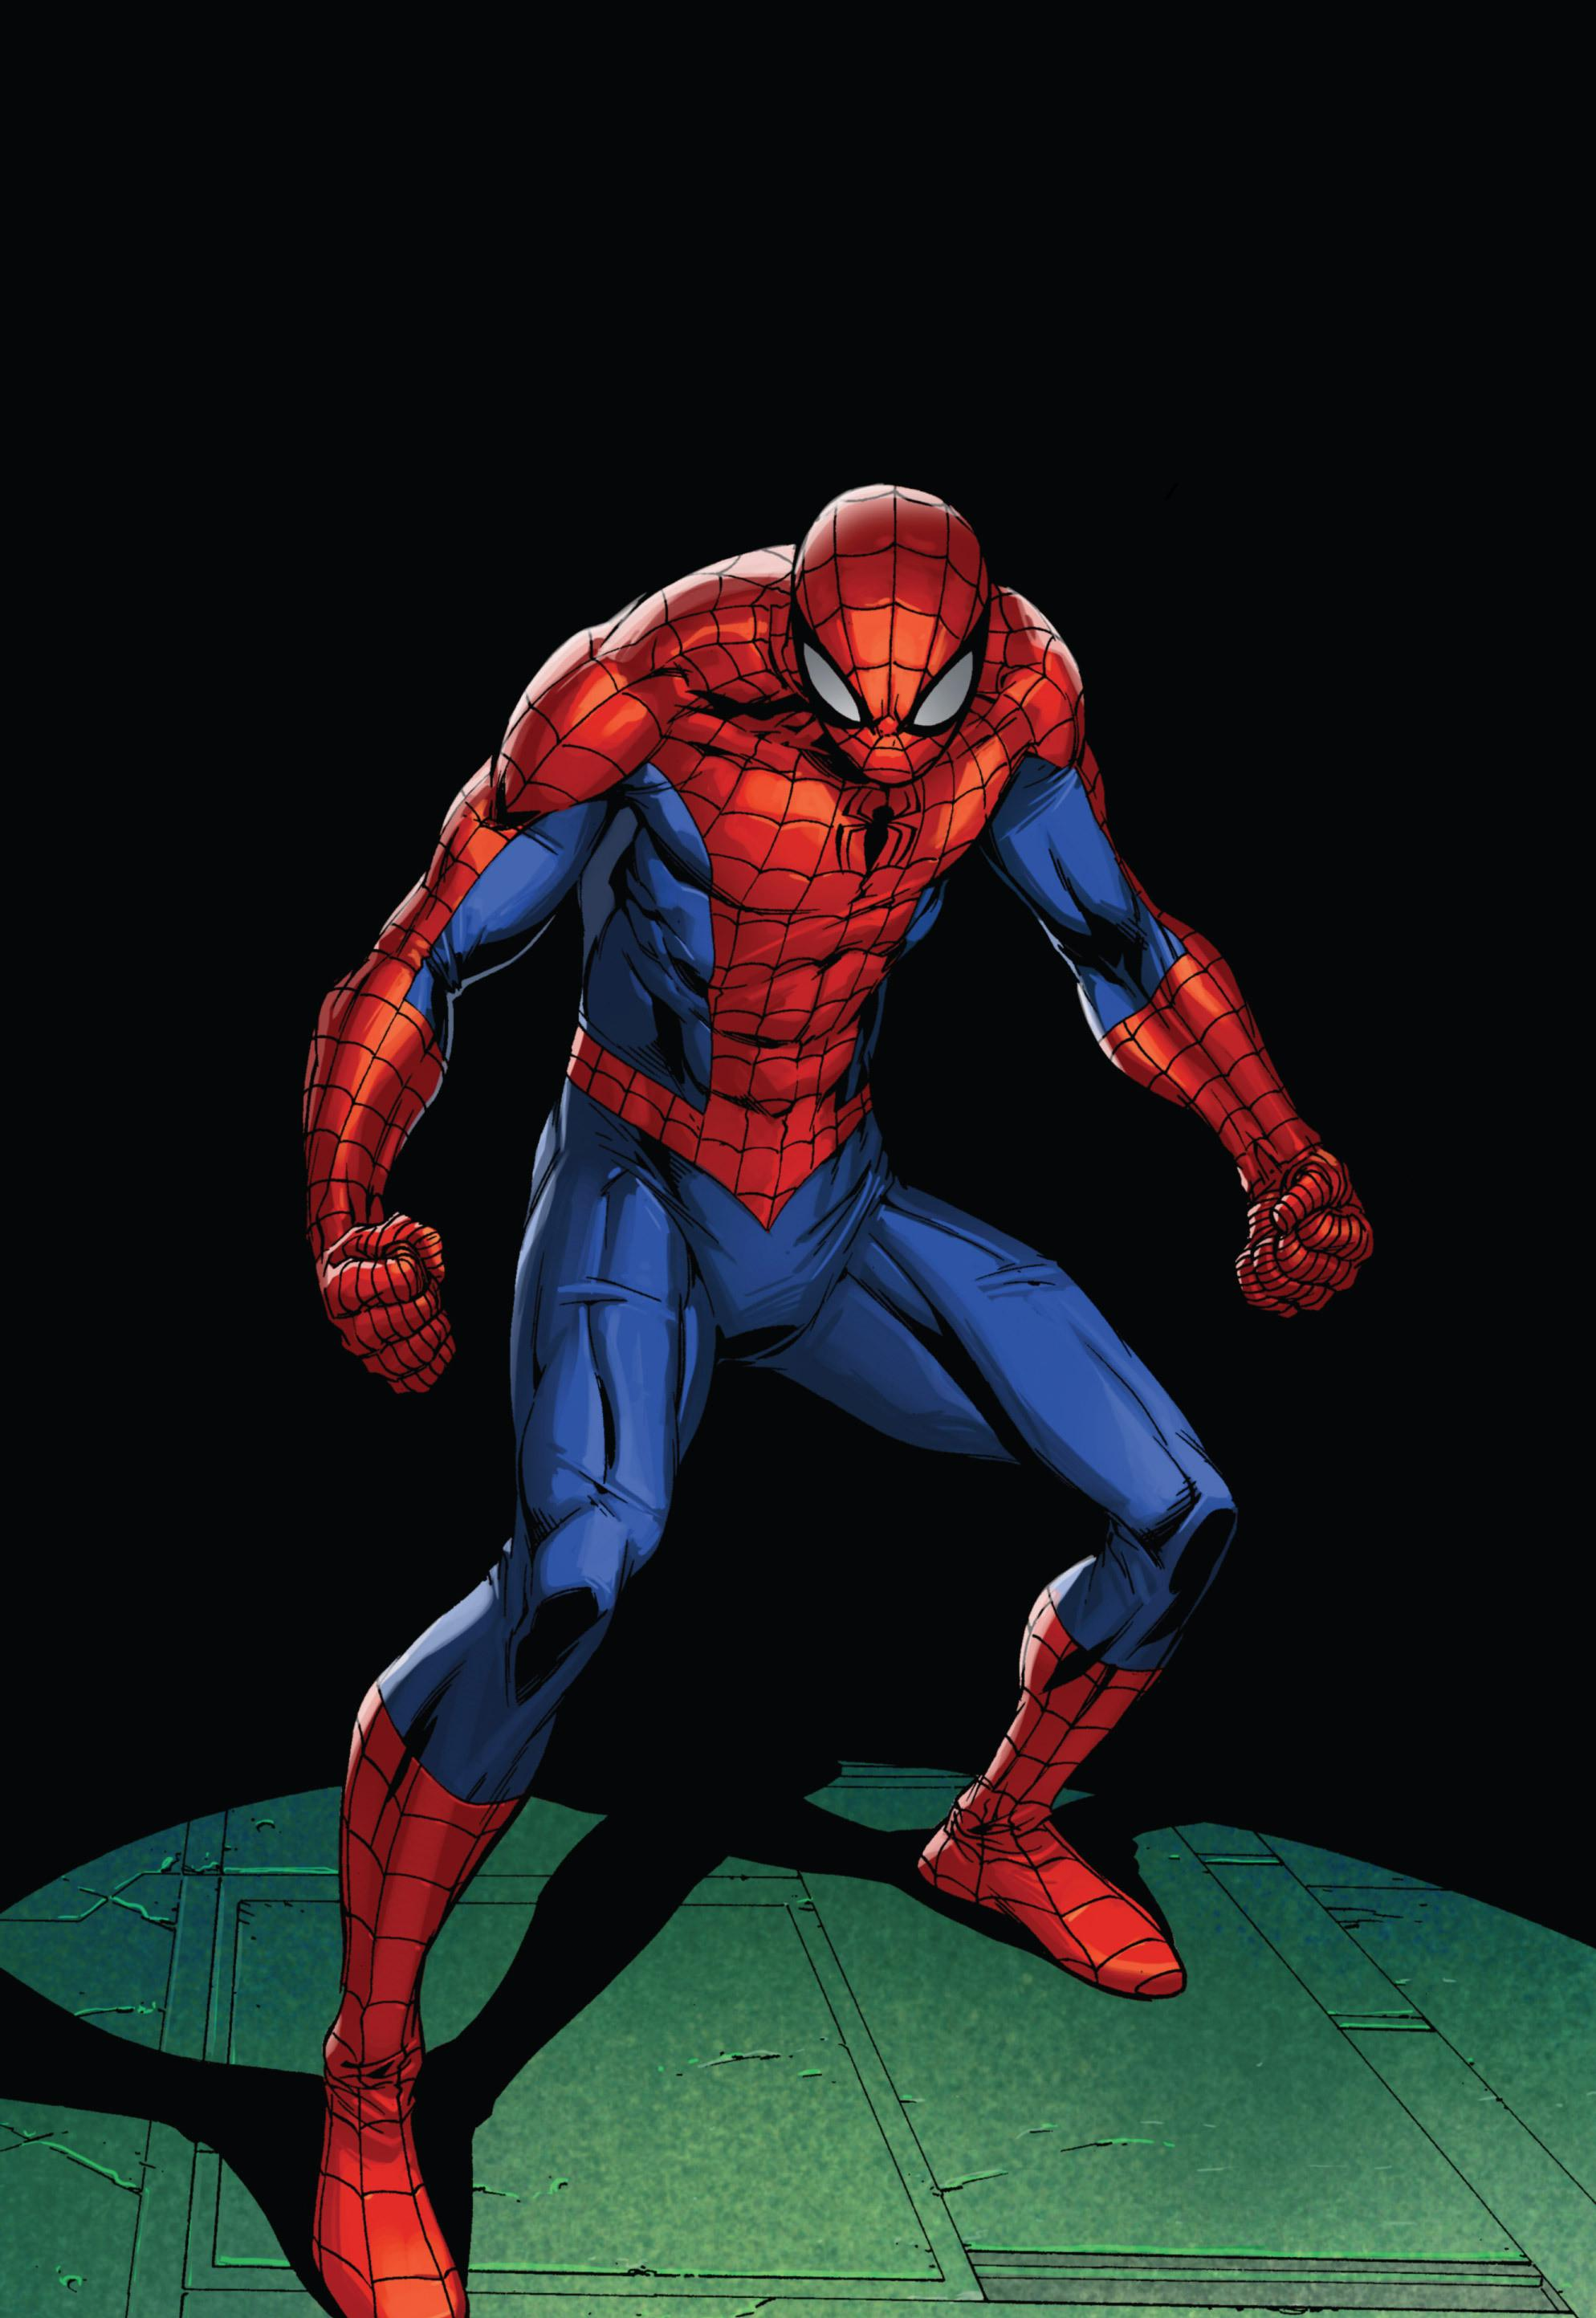 Amazing spider man cartoon peter parker - photo#16